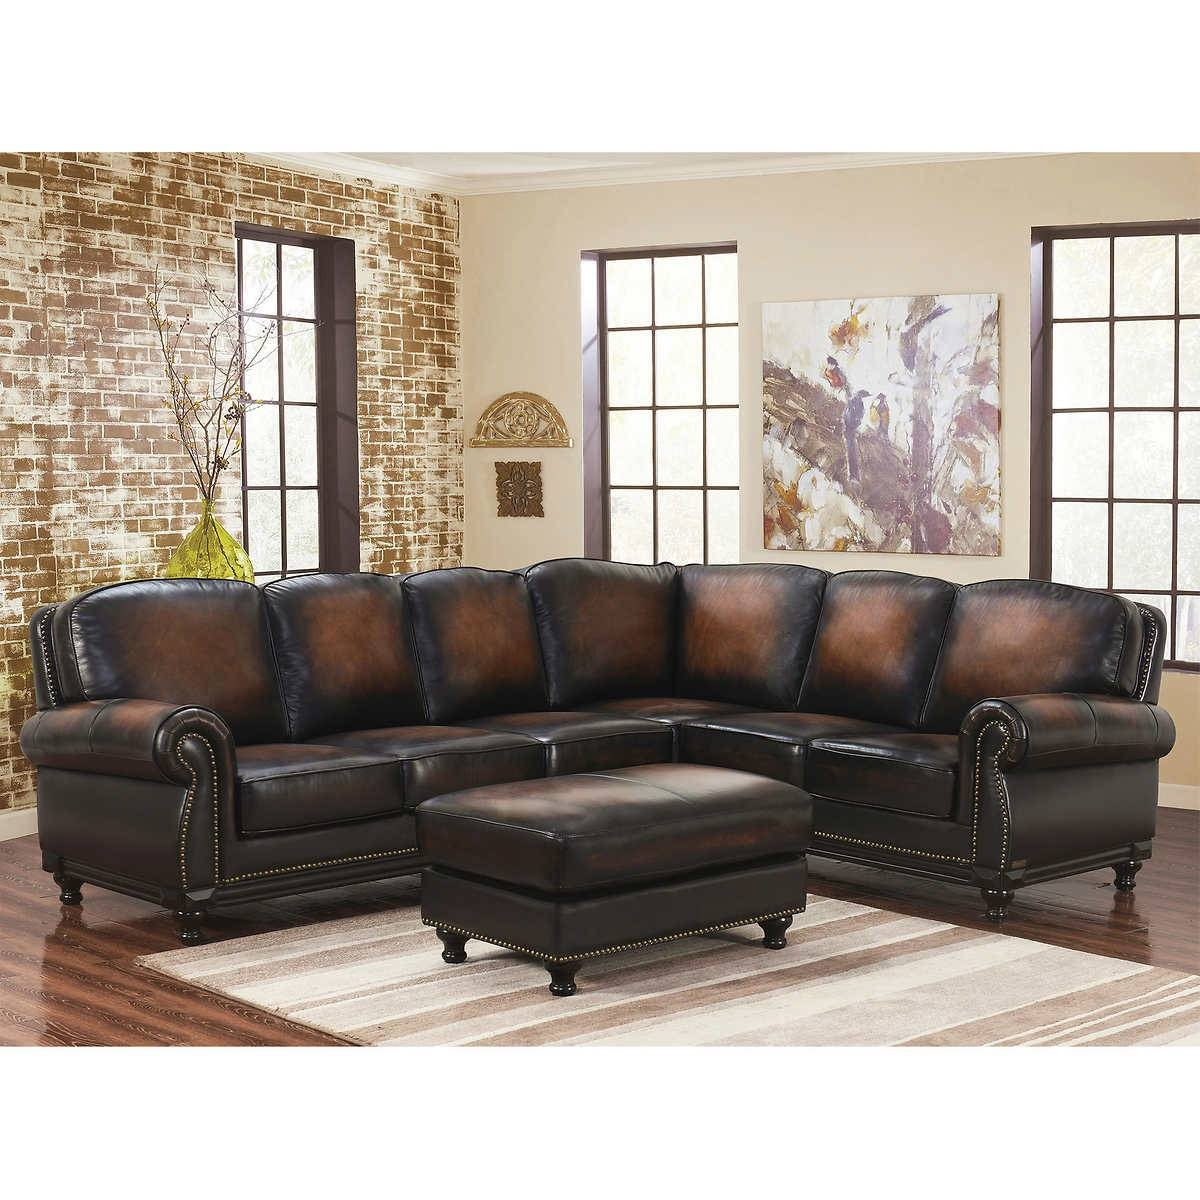 Sofas Center : Traditional Sectionalfas Living Room Furniture regarding Bassett Sectional Sofa (Image 25 of 30)